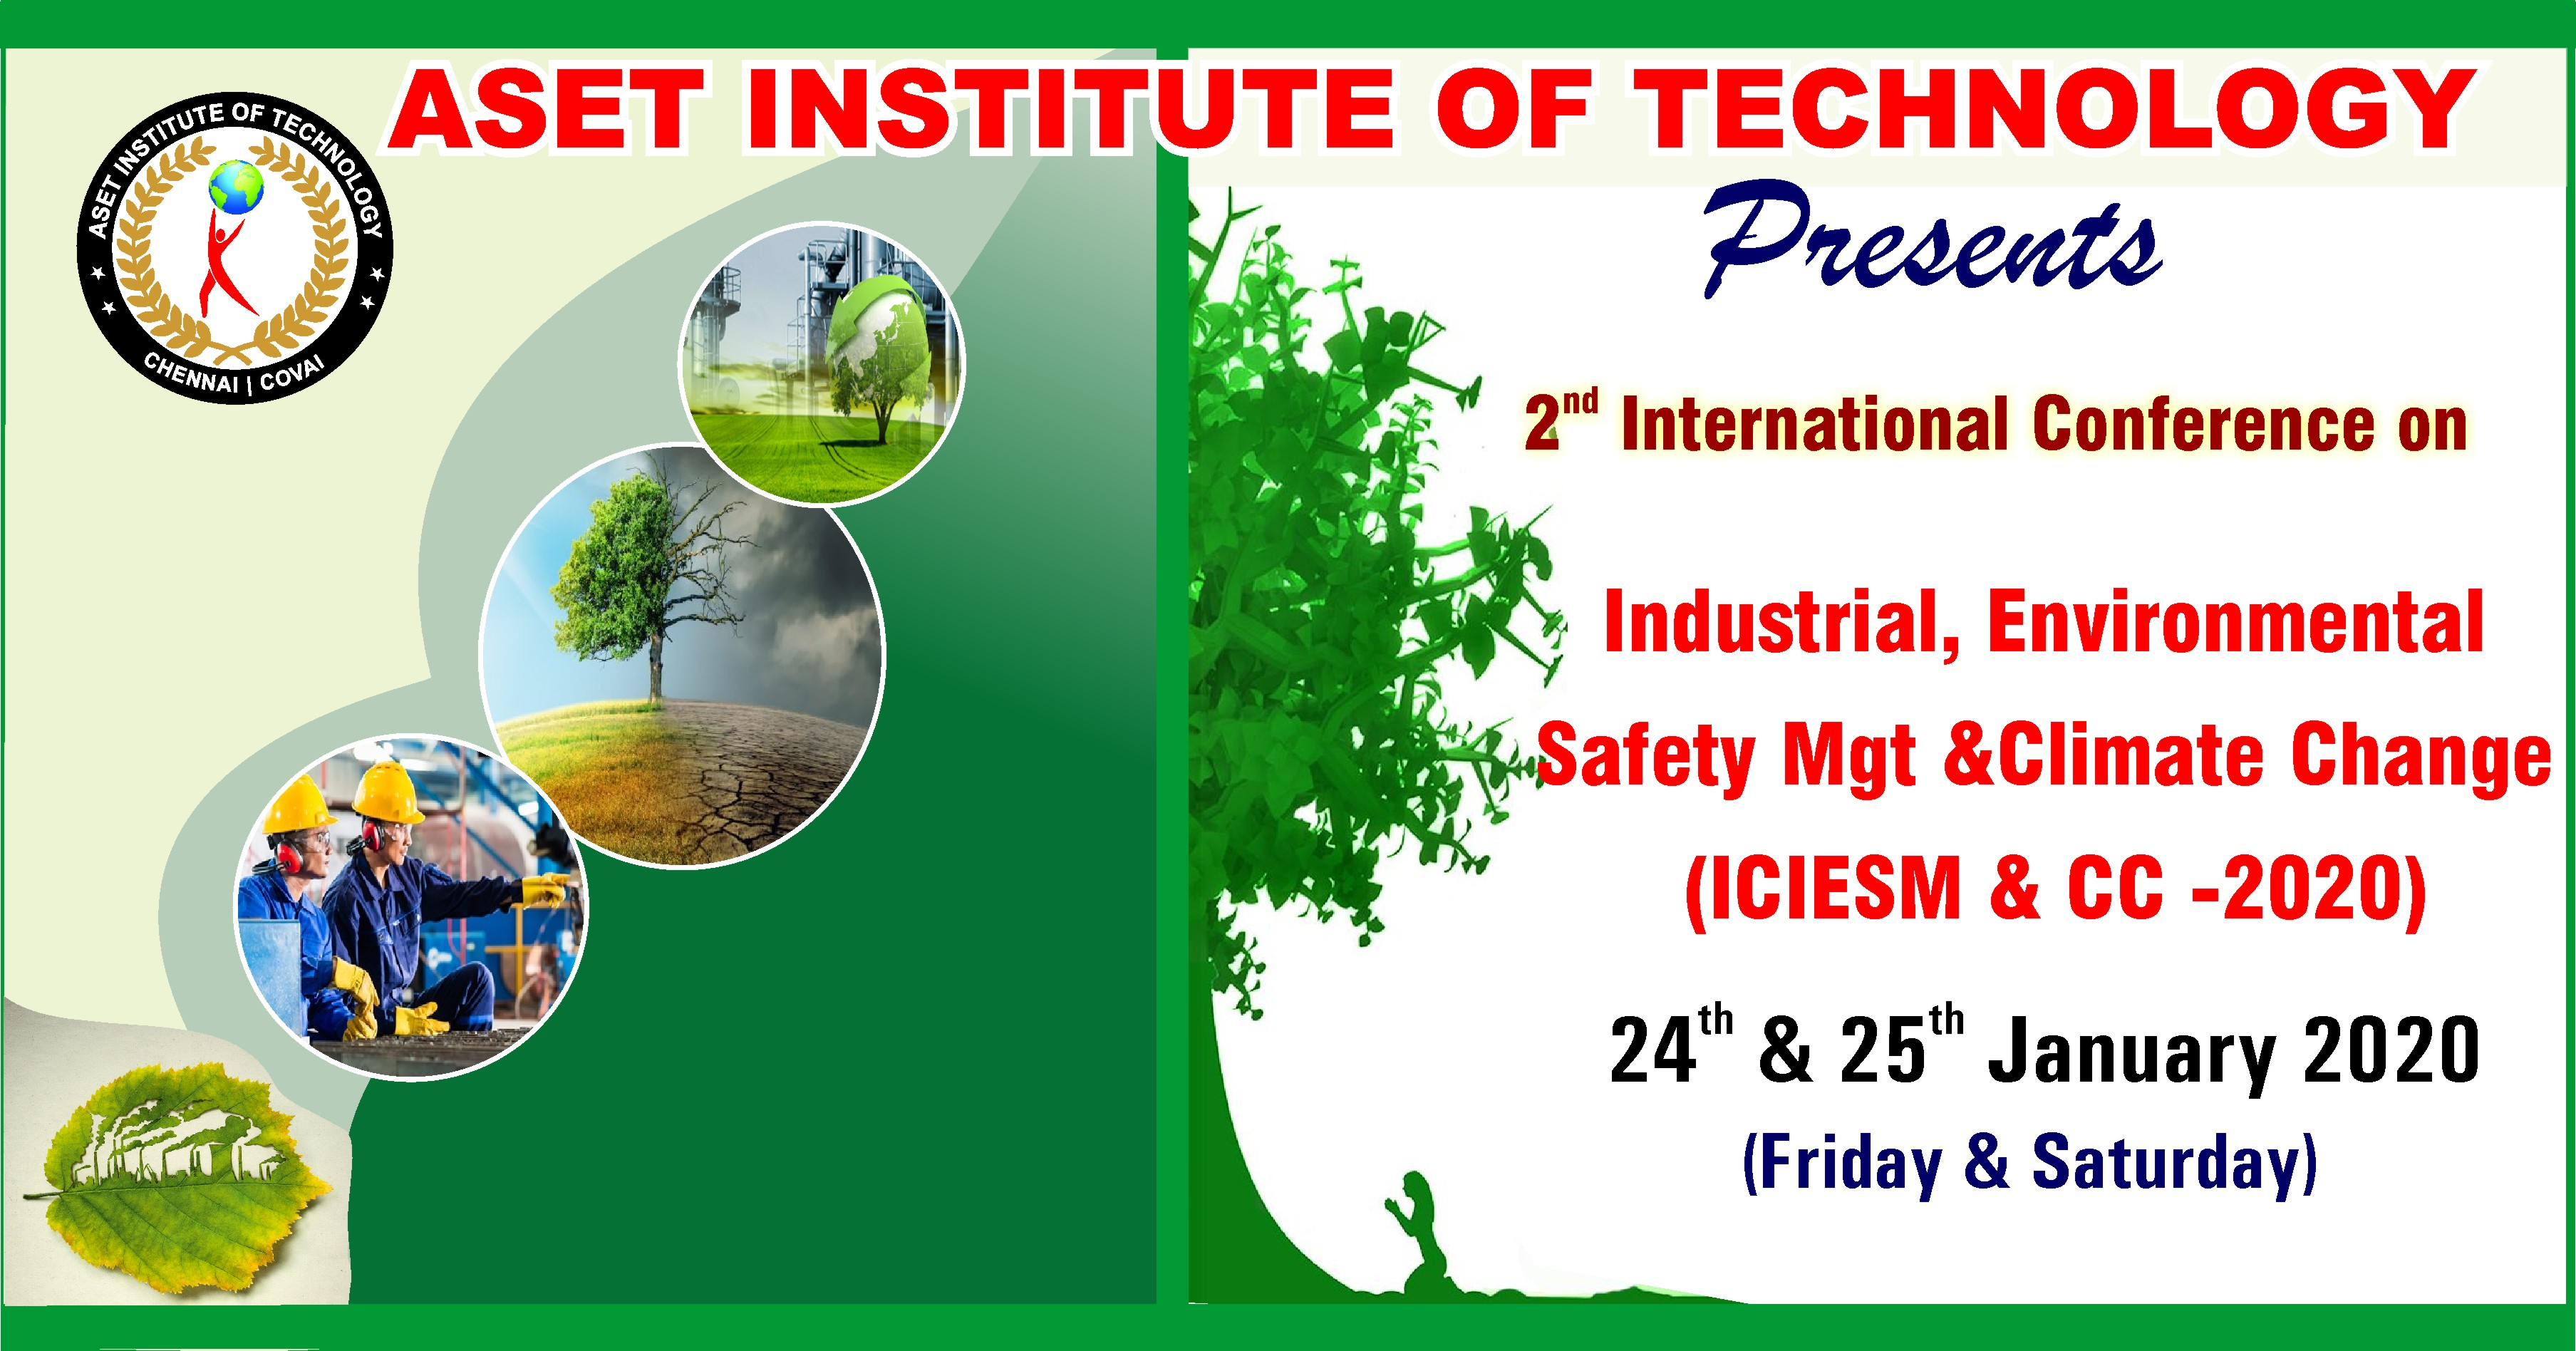 International Conference on Industrial, Environmental Safety Management and Climate Change 2020